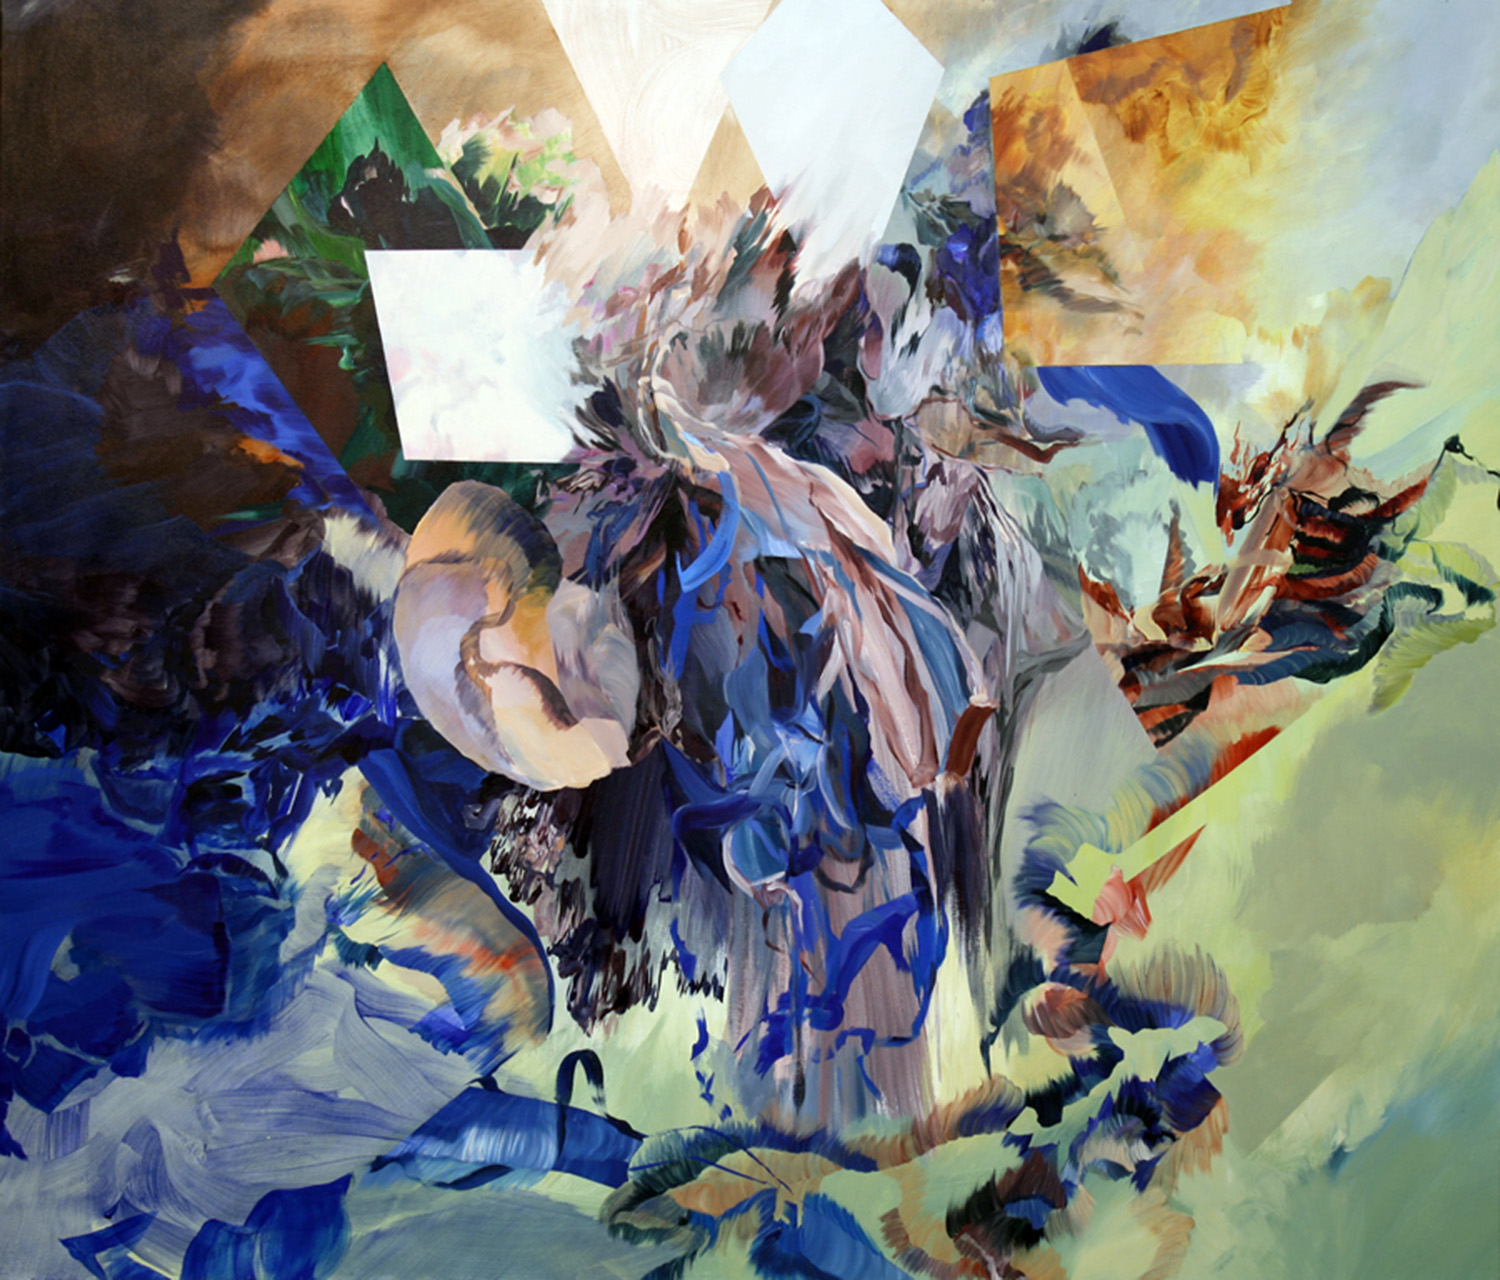 Monster Anthem, 2010, 72x84 inches, acrylic on canvas